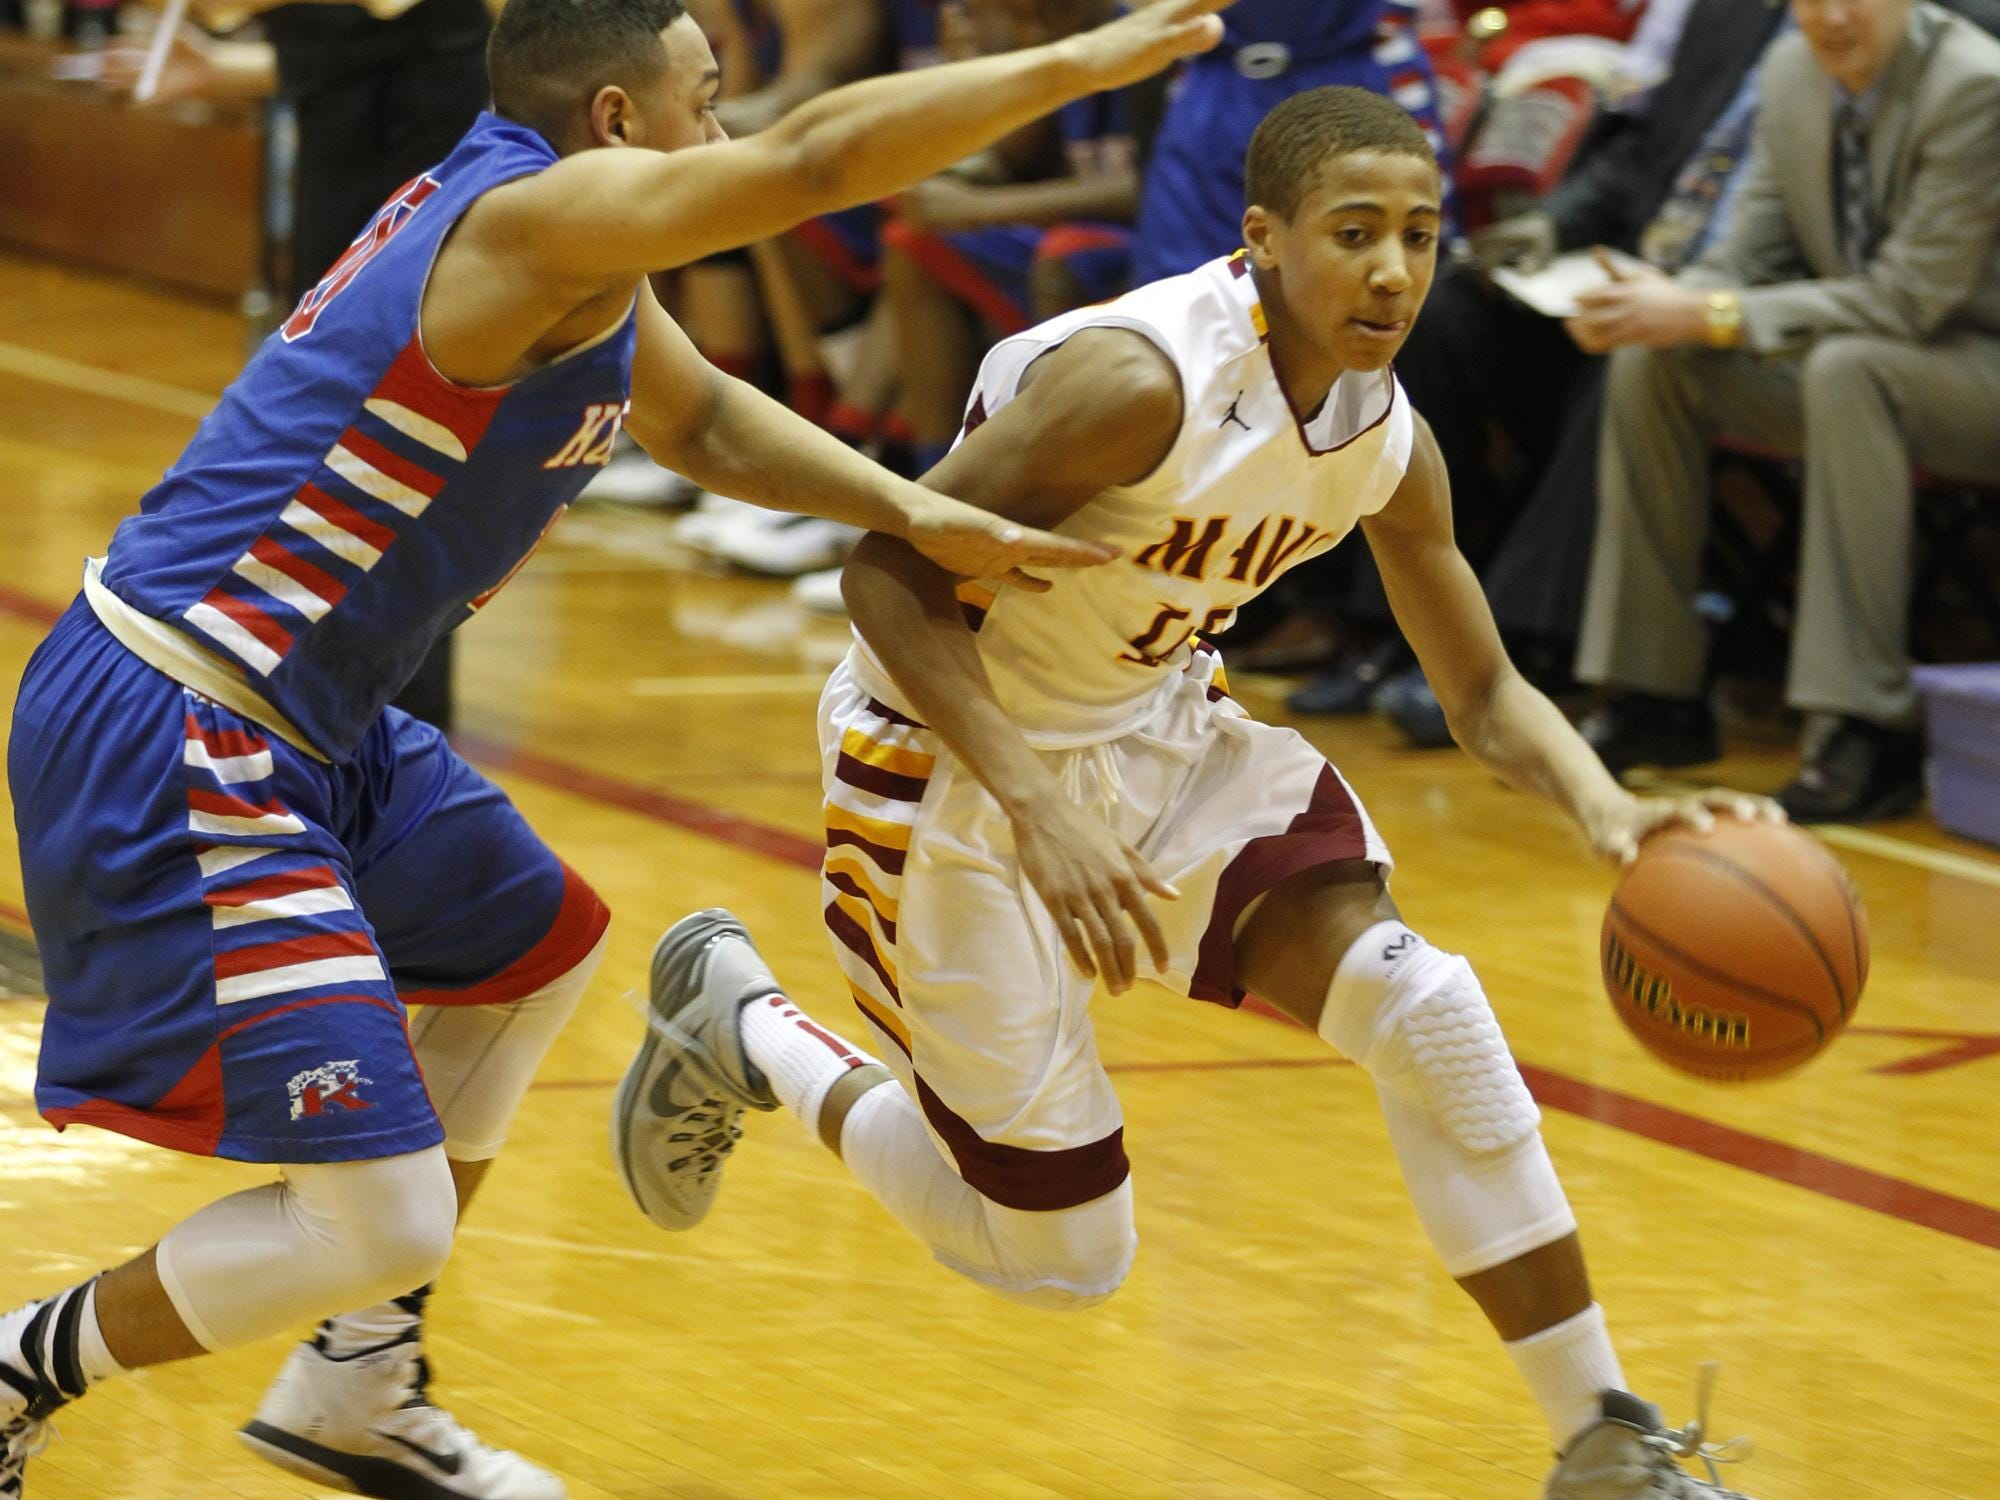 McCutcheon rising sophomore Robert Phinisee, shown here last March against Kokomo, is getting important experience and exposure this summer.